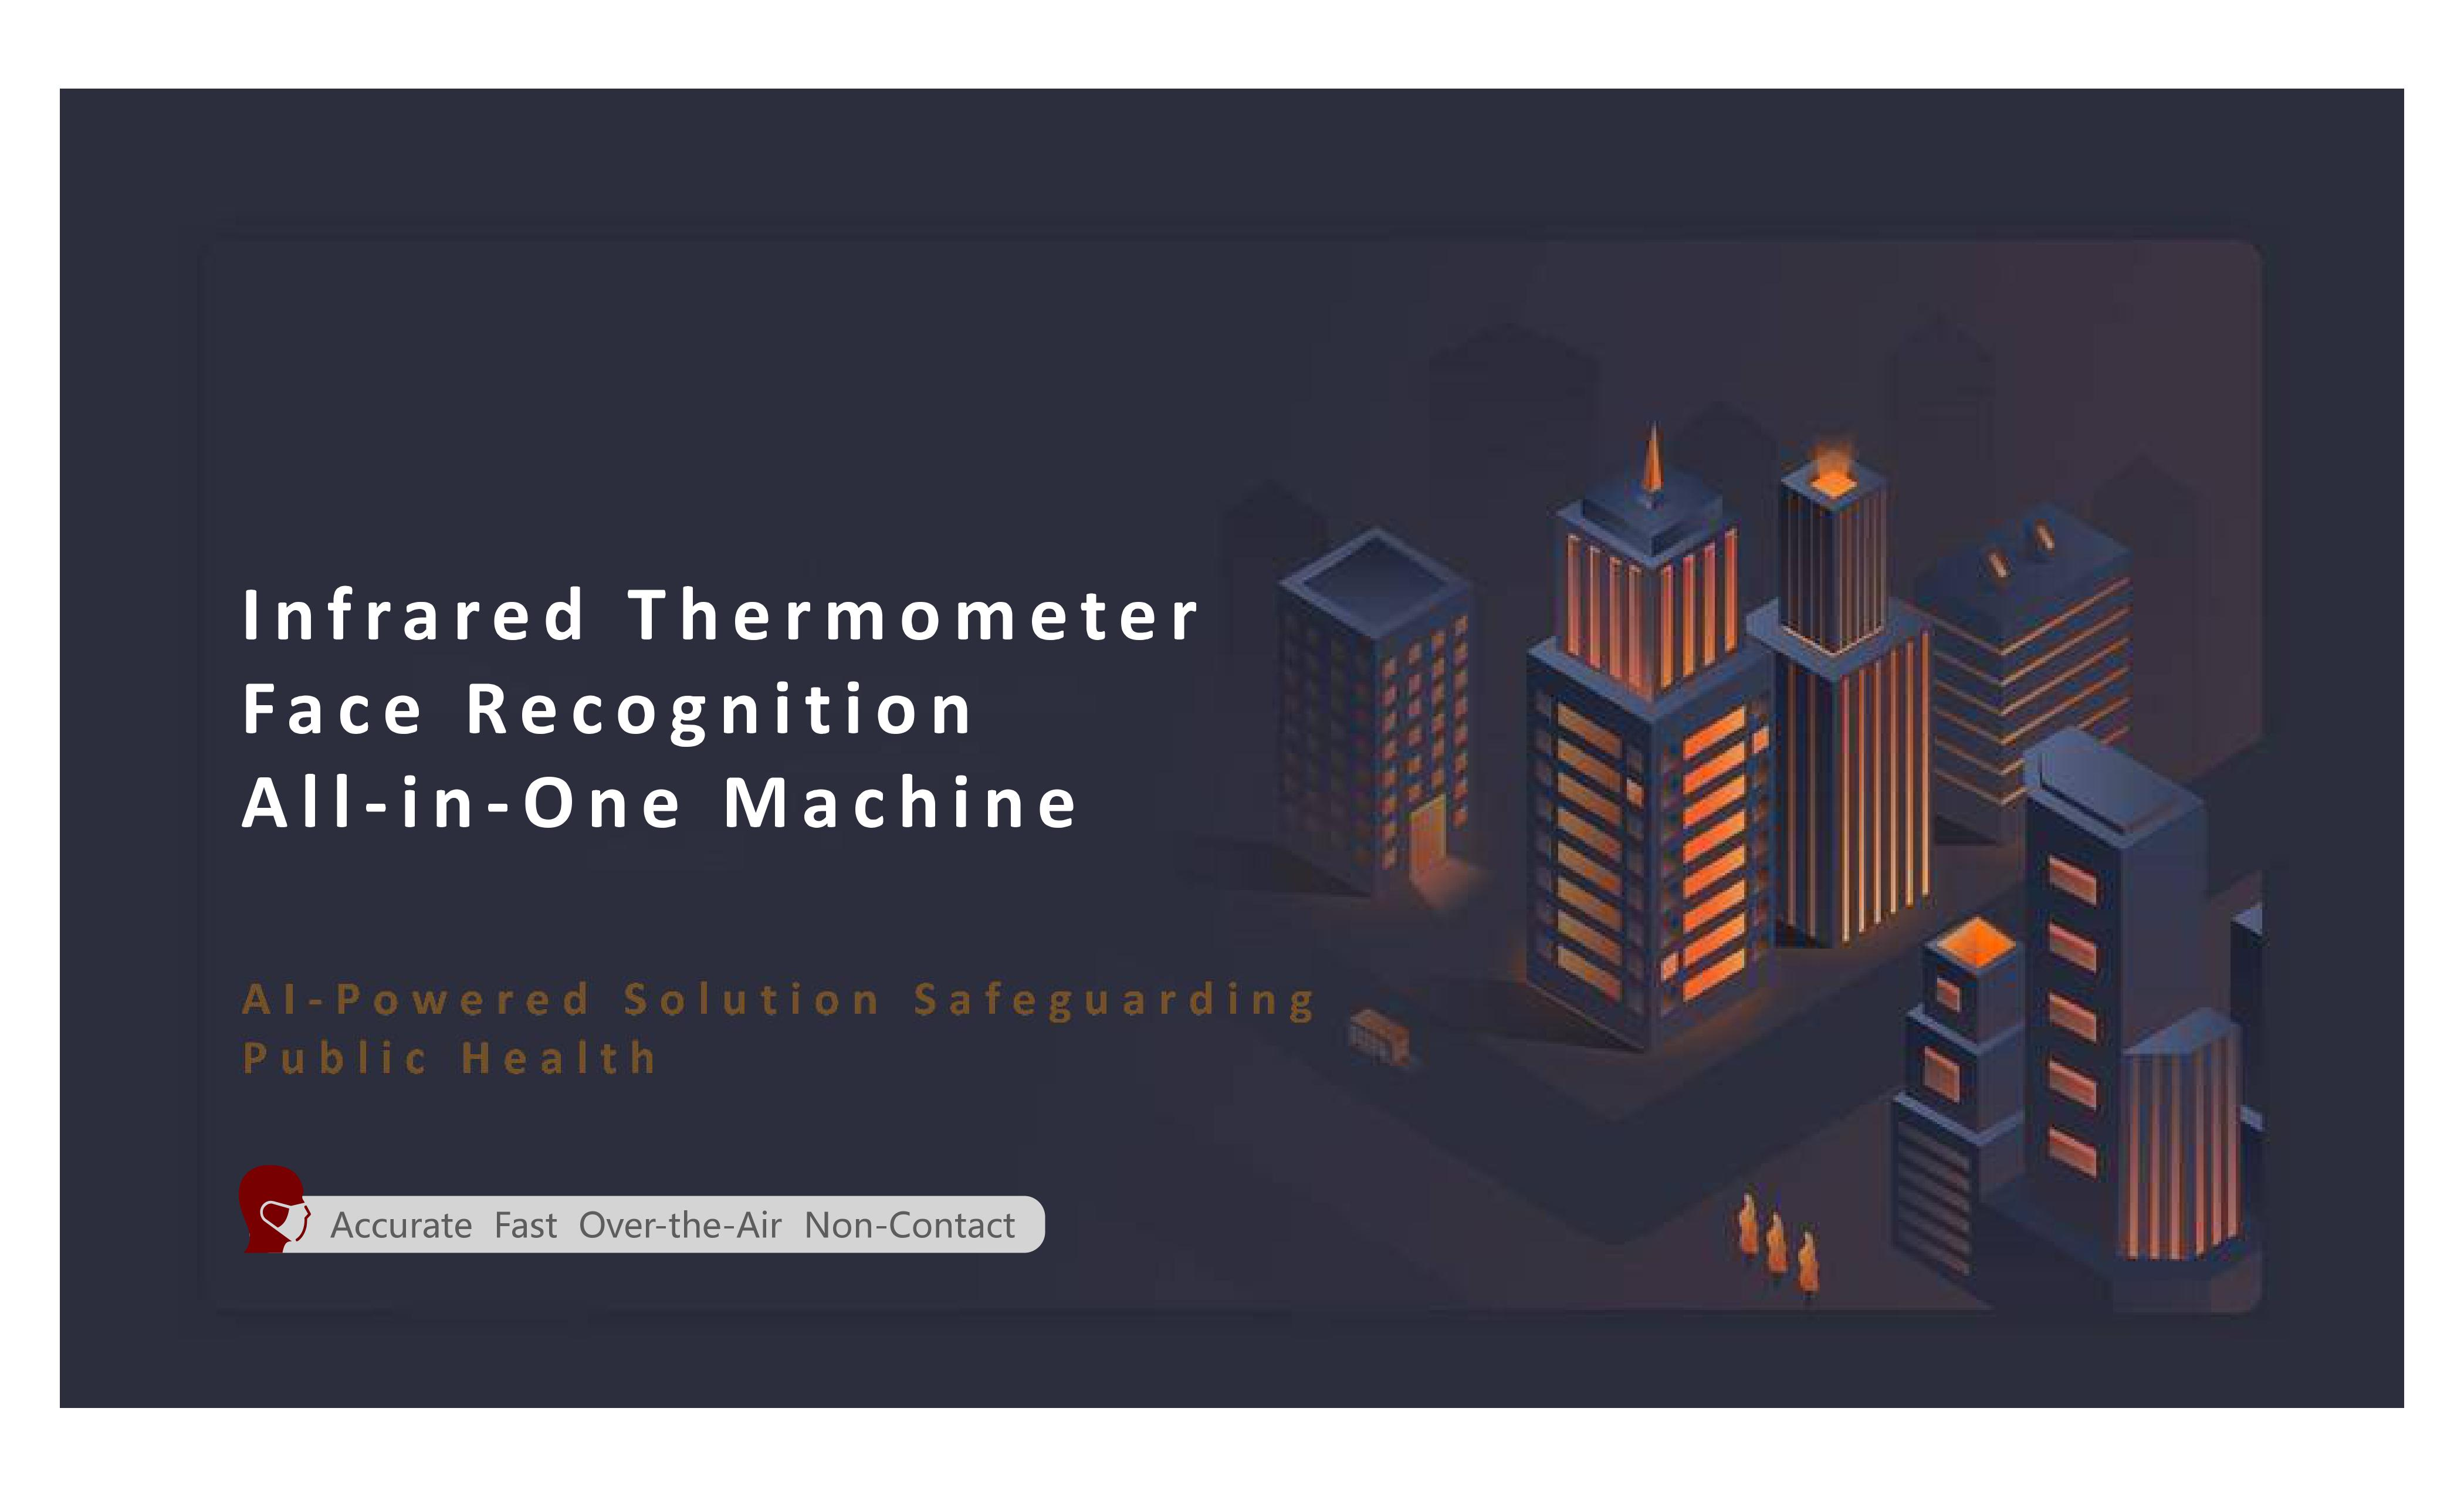 RECOGNITION - ALL IN ONE MACHINE